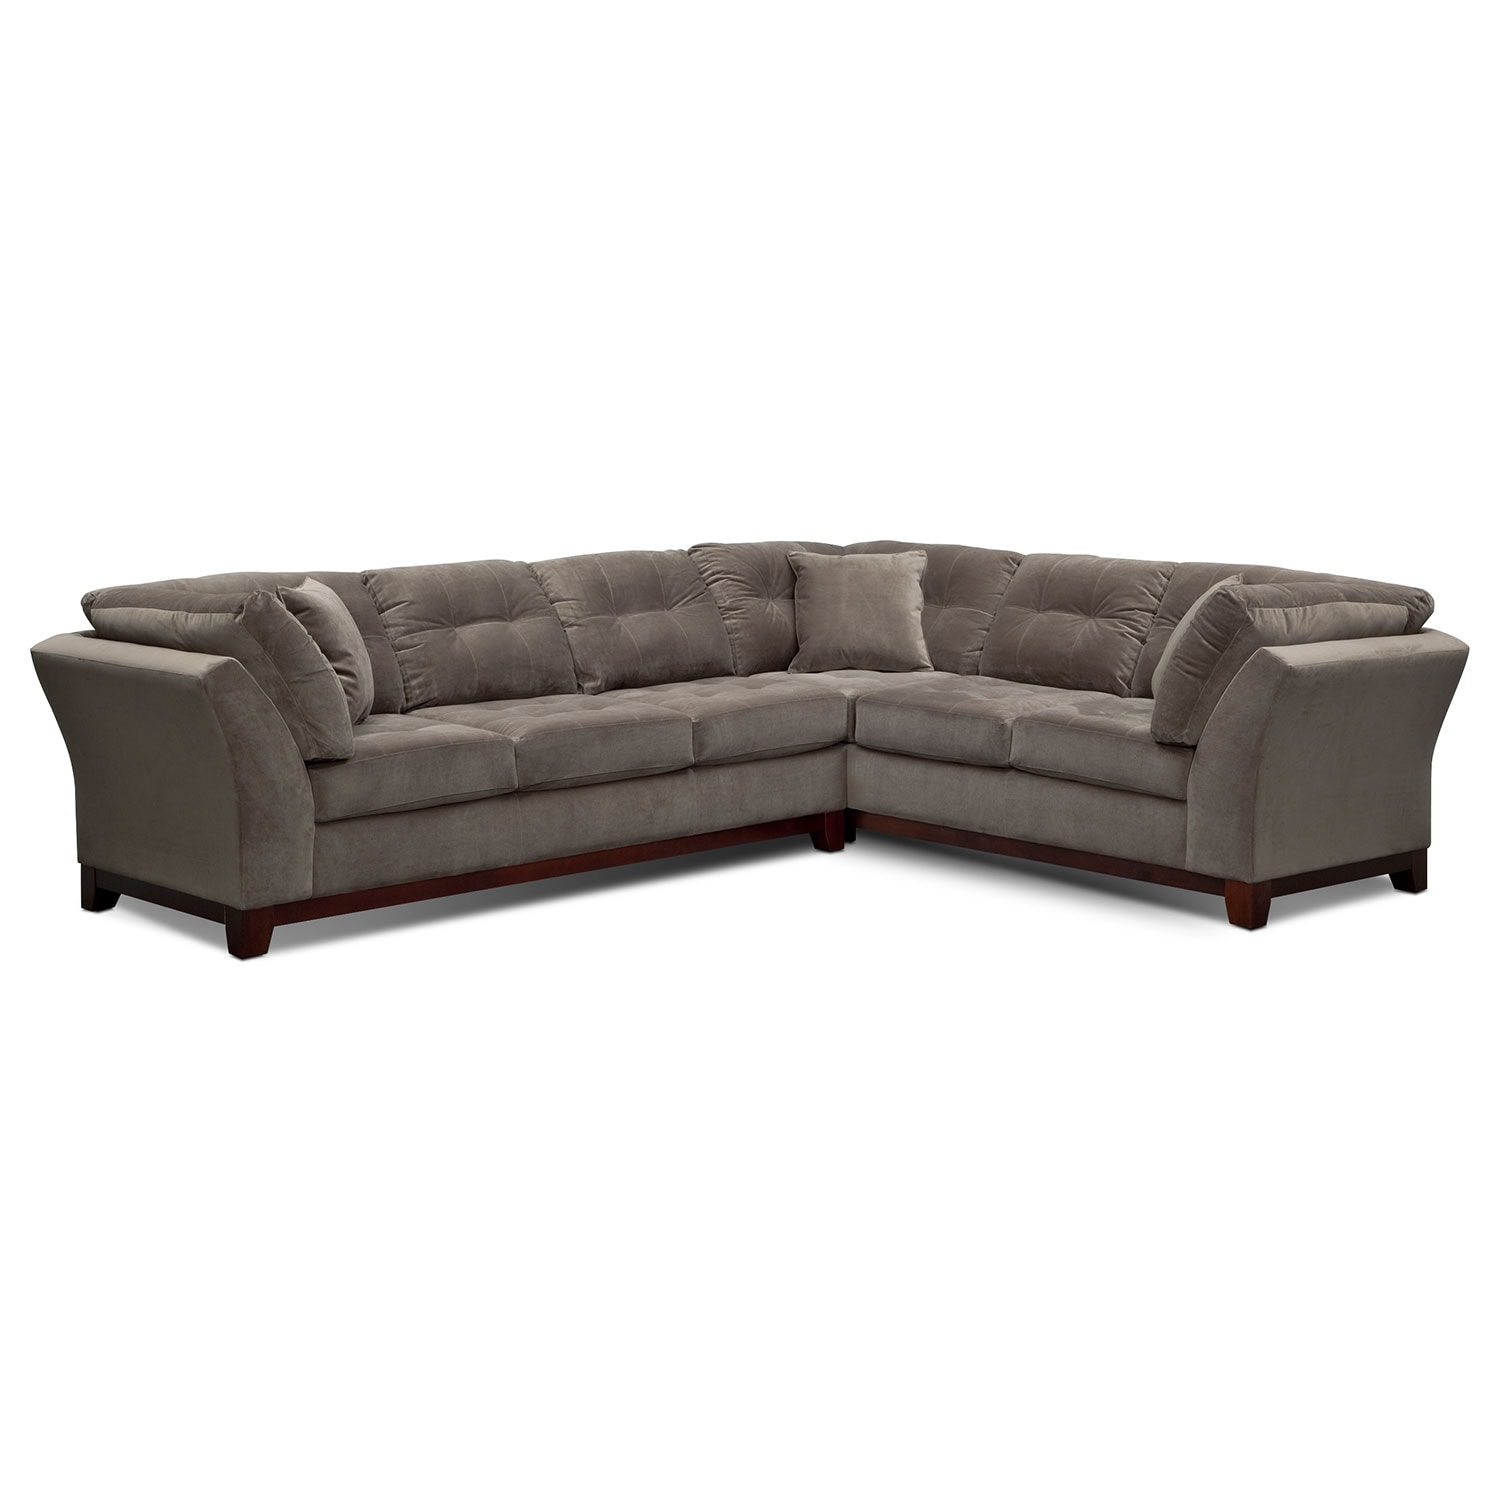 Sebring 2-Piece Sectional with Left-Facing Sofa - Gray